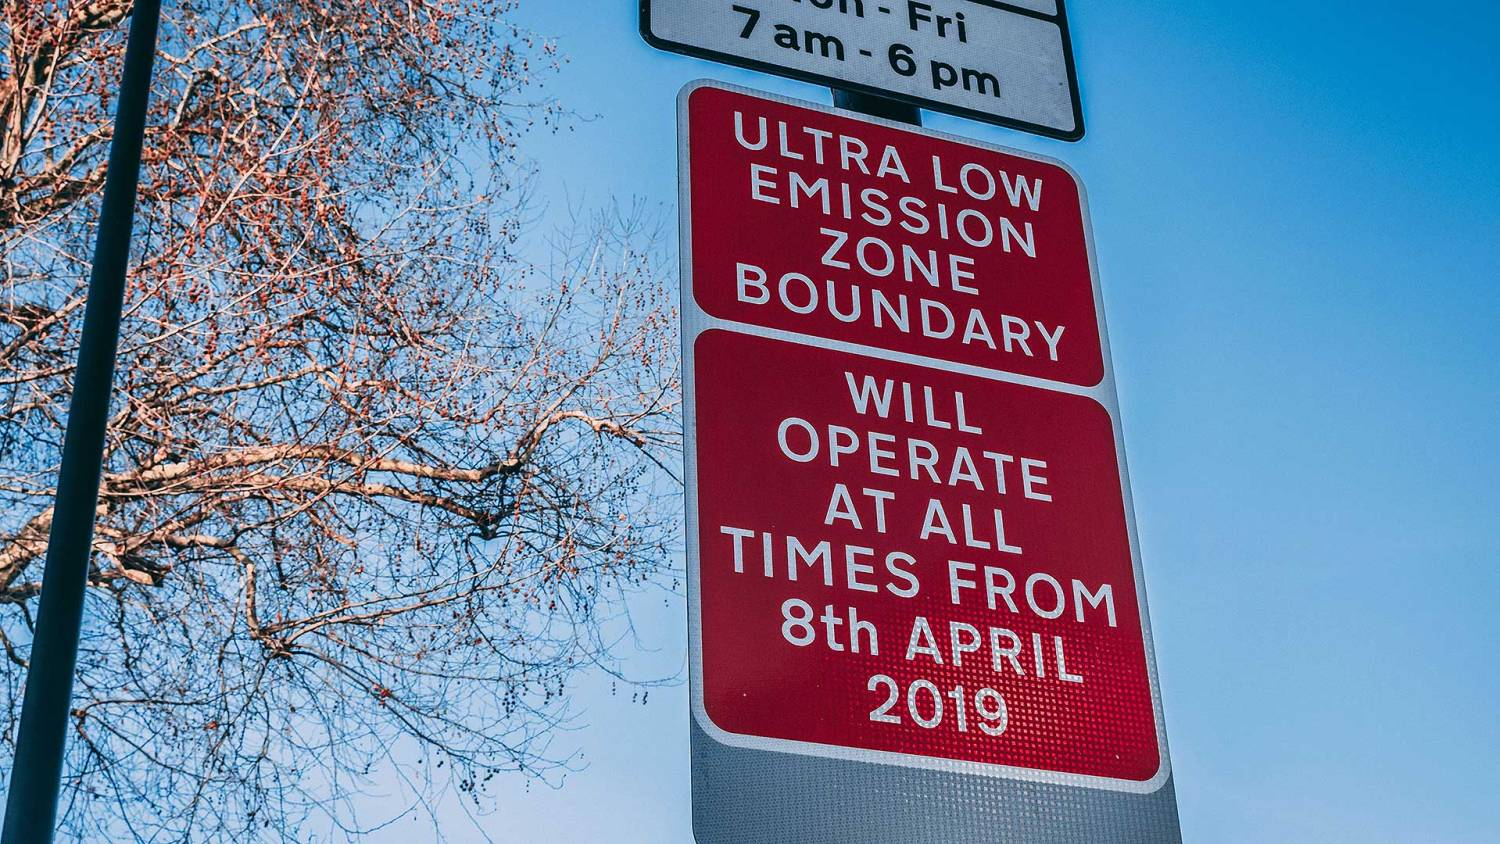 London Ultra Low Emission Zone boundary sign